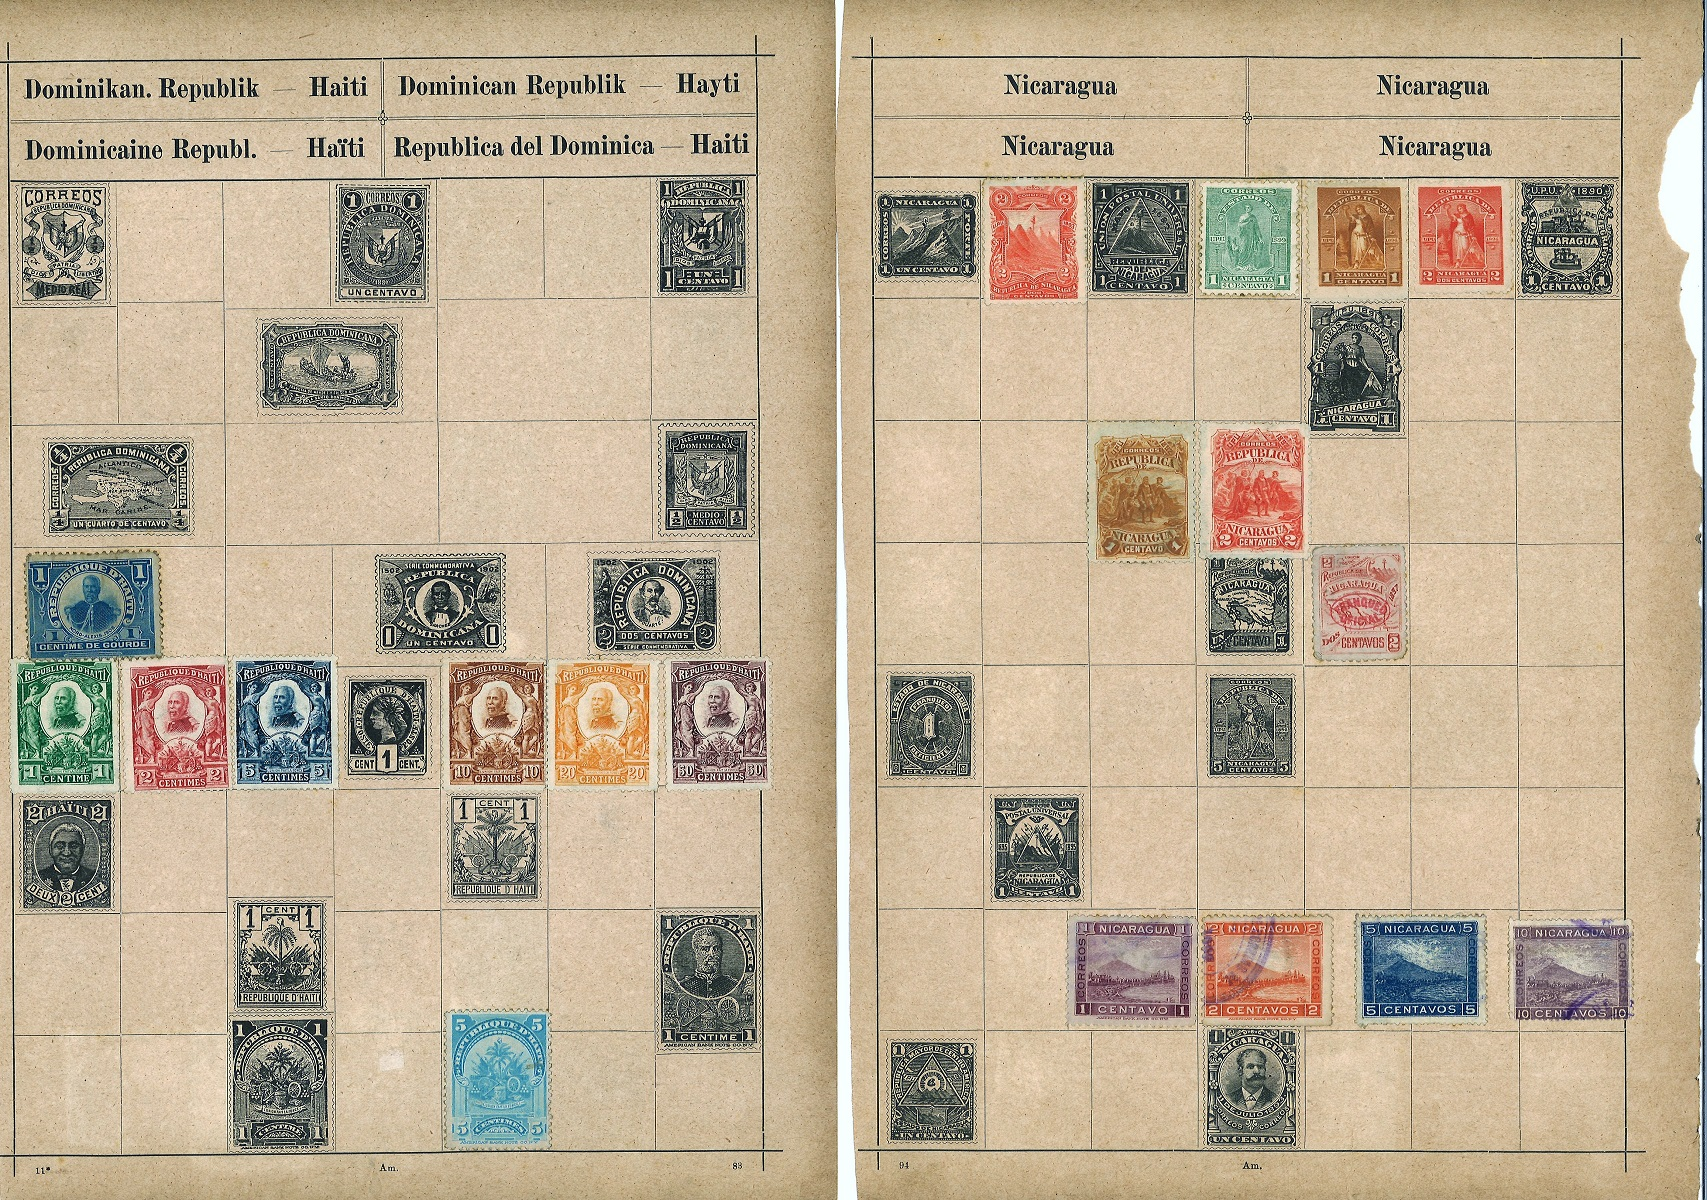 South America stamp collection 14 loose album pages countries include Argentina, Brazil, Colombia